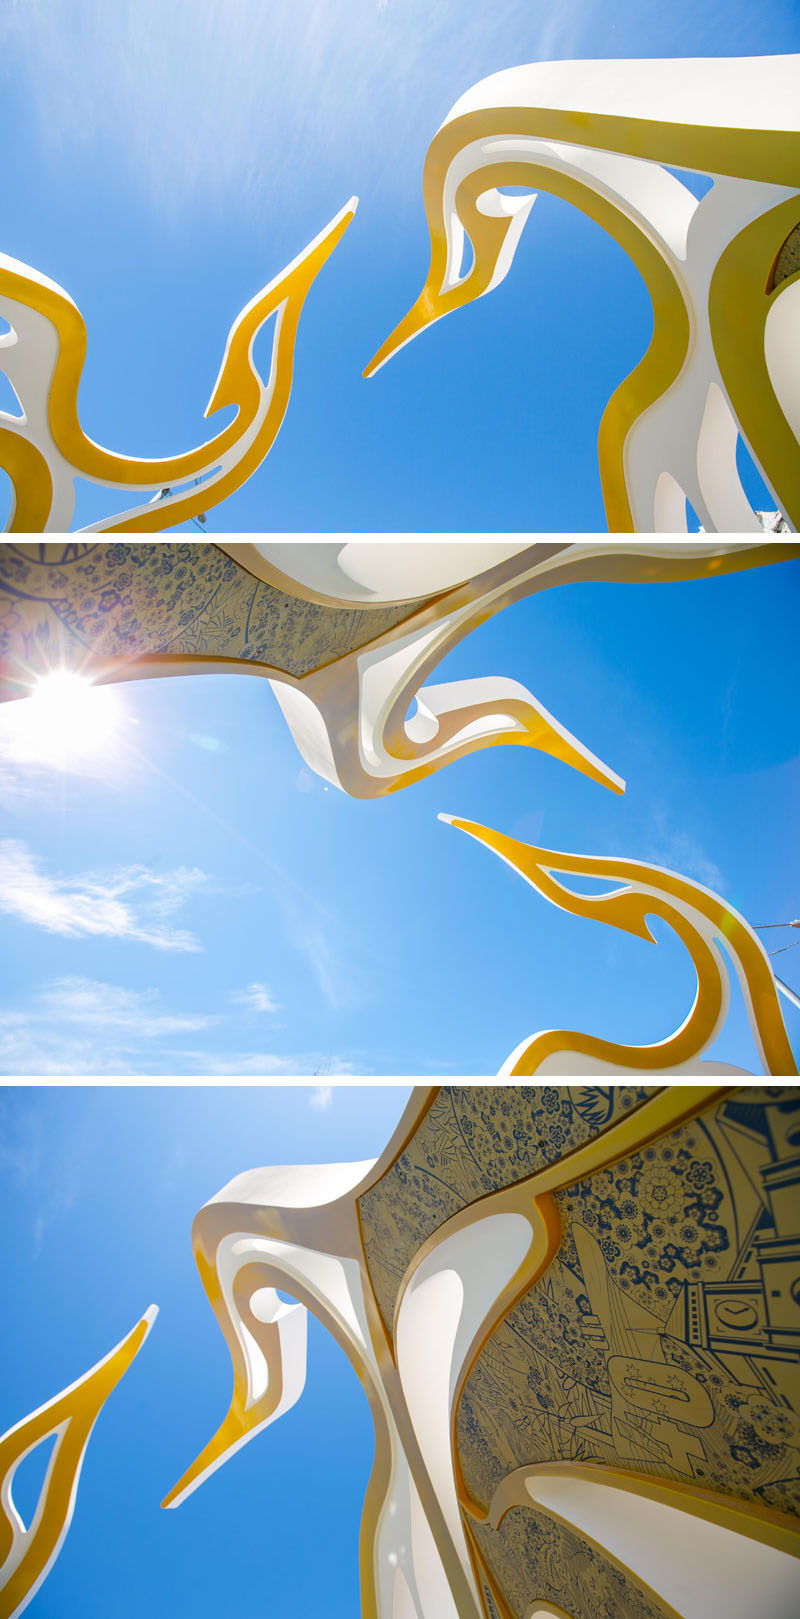 Architecture firm McBride Charles Ryan, have designed the Saigon Welcome Arch, a modern sculpture that represents the Vietnamese settlement in Footscray, a suburb of Melbourne, Australia.